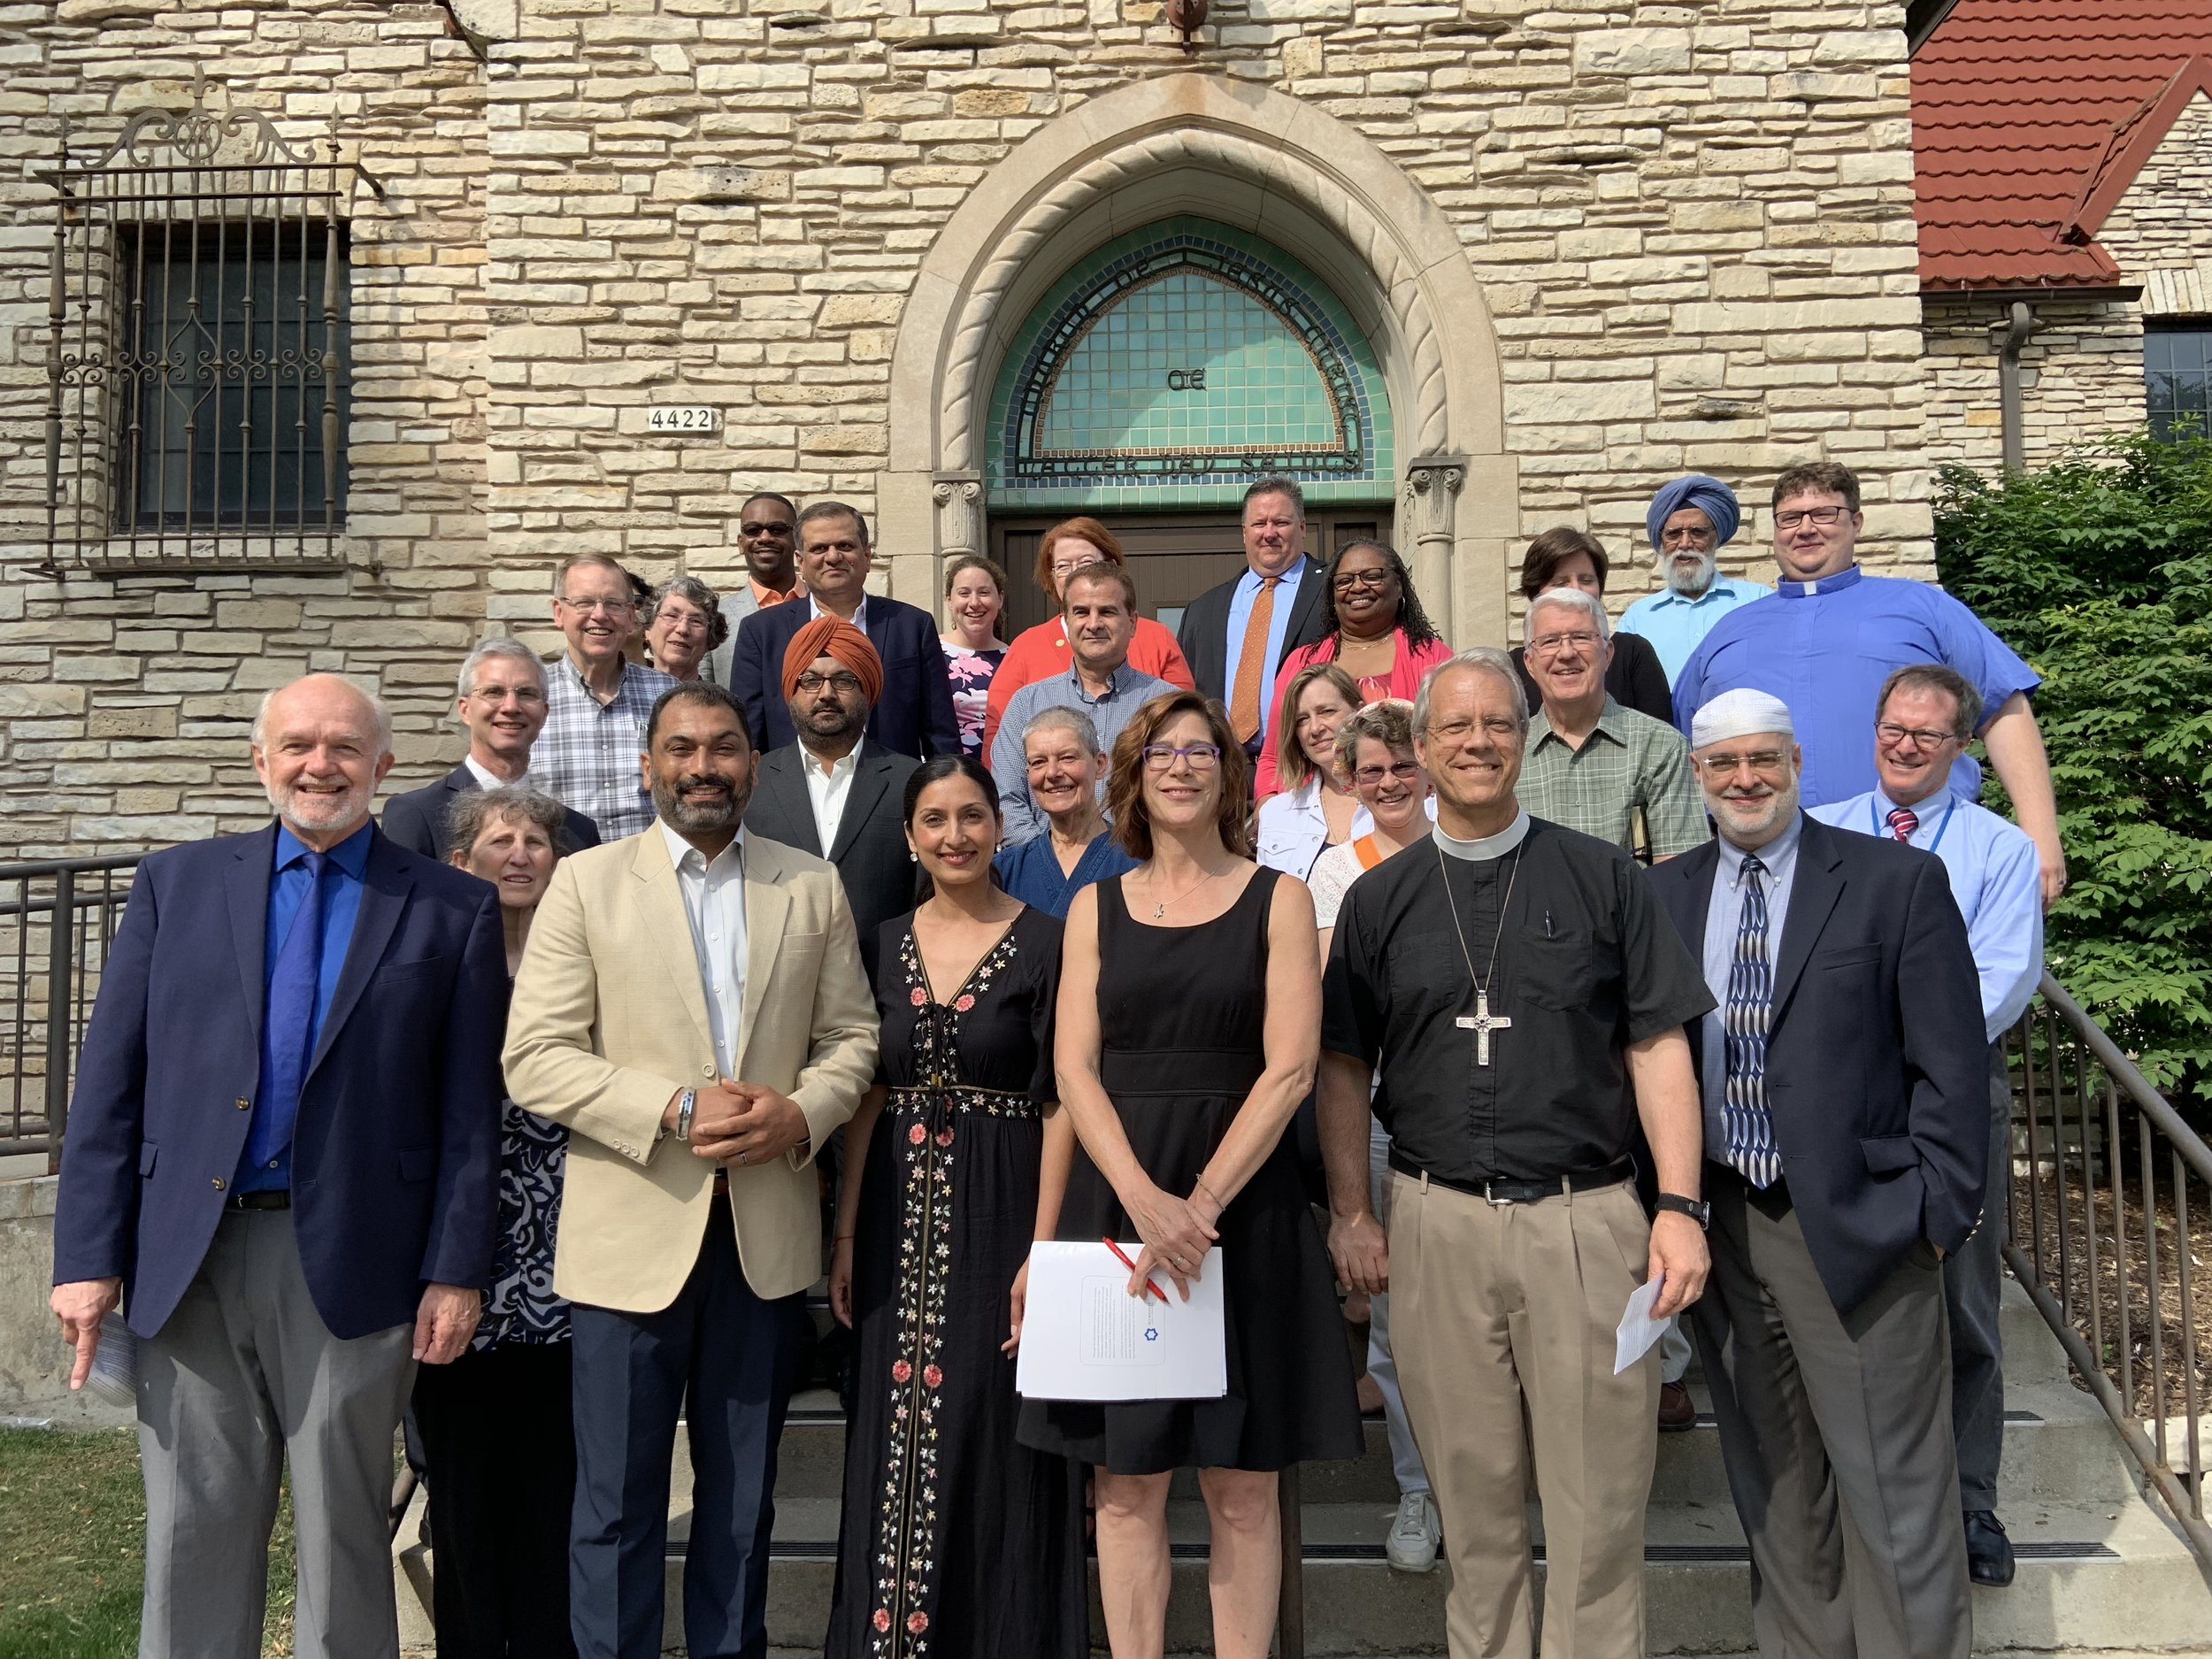 Members of the Interfaith Conference of Greater Milwaukee with Tom Heinen (first left) and Pardeep Kaleka (next to Tom)